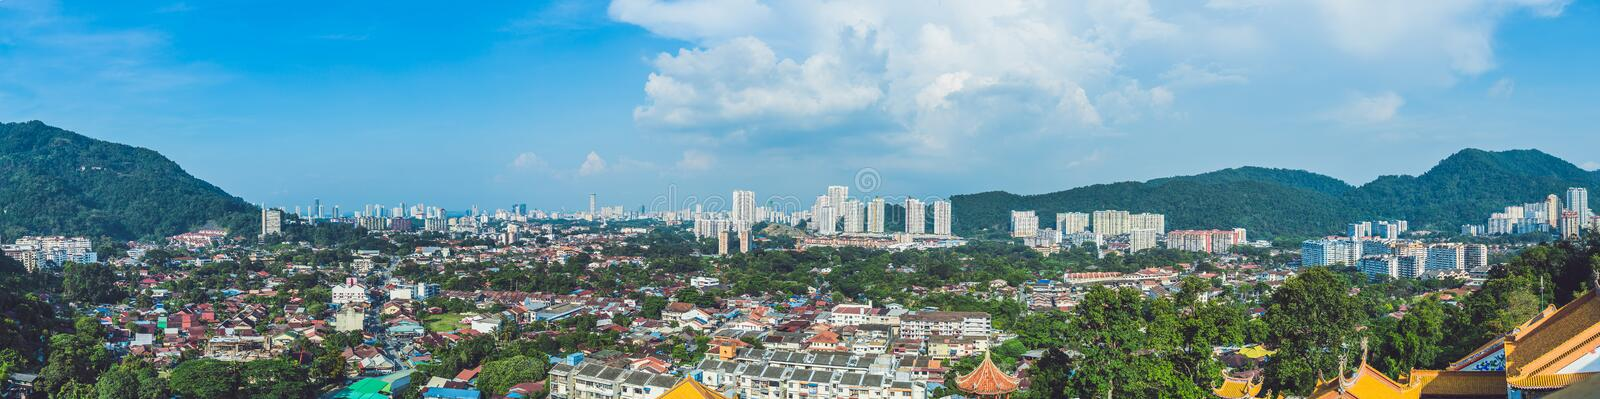 Vue panoramique de Penang, Georgetown en Malaisie photos libres de droits